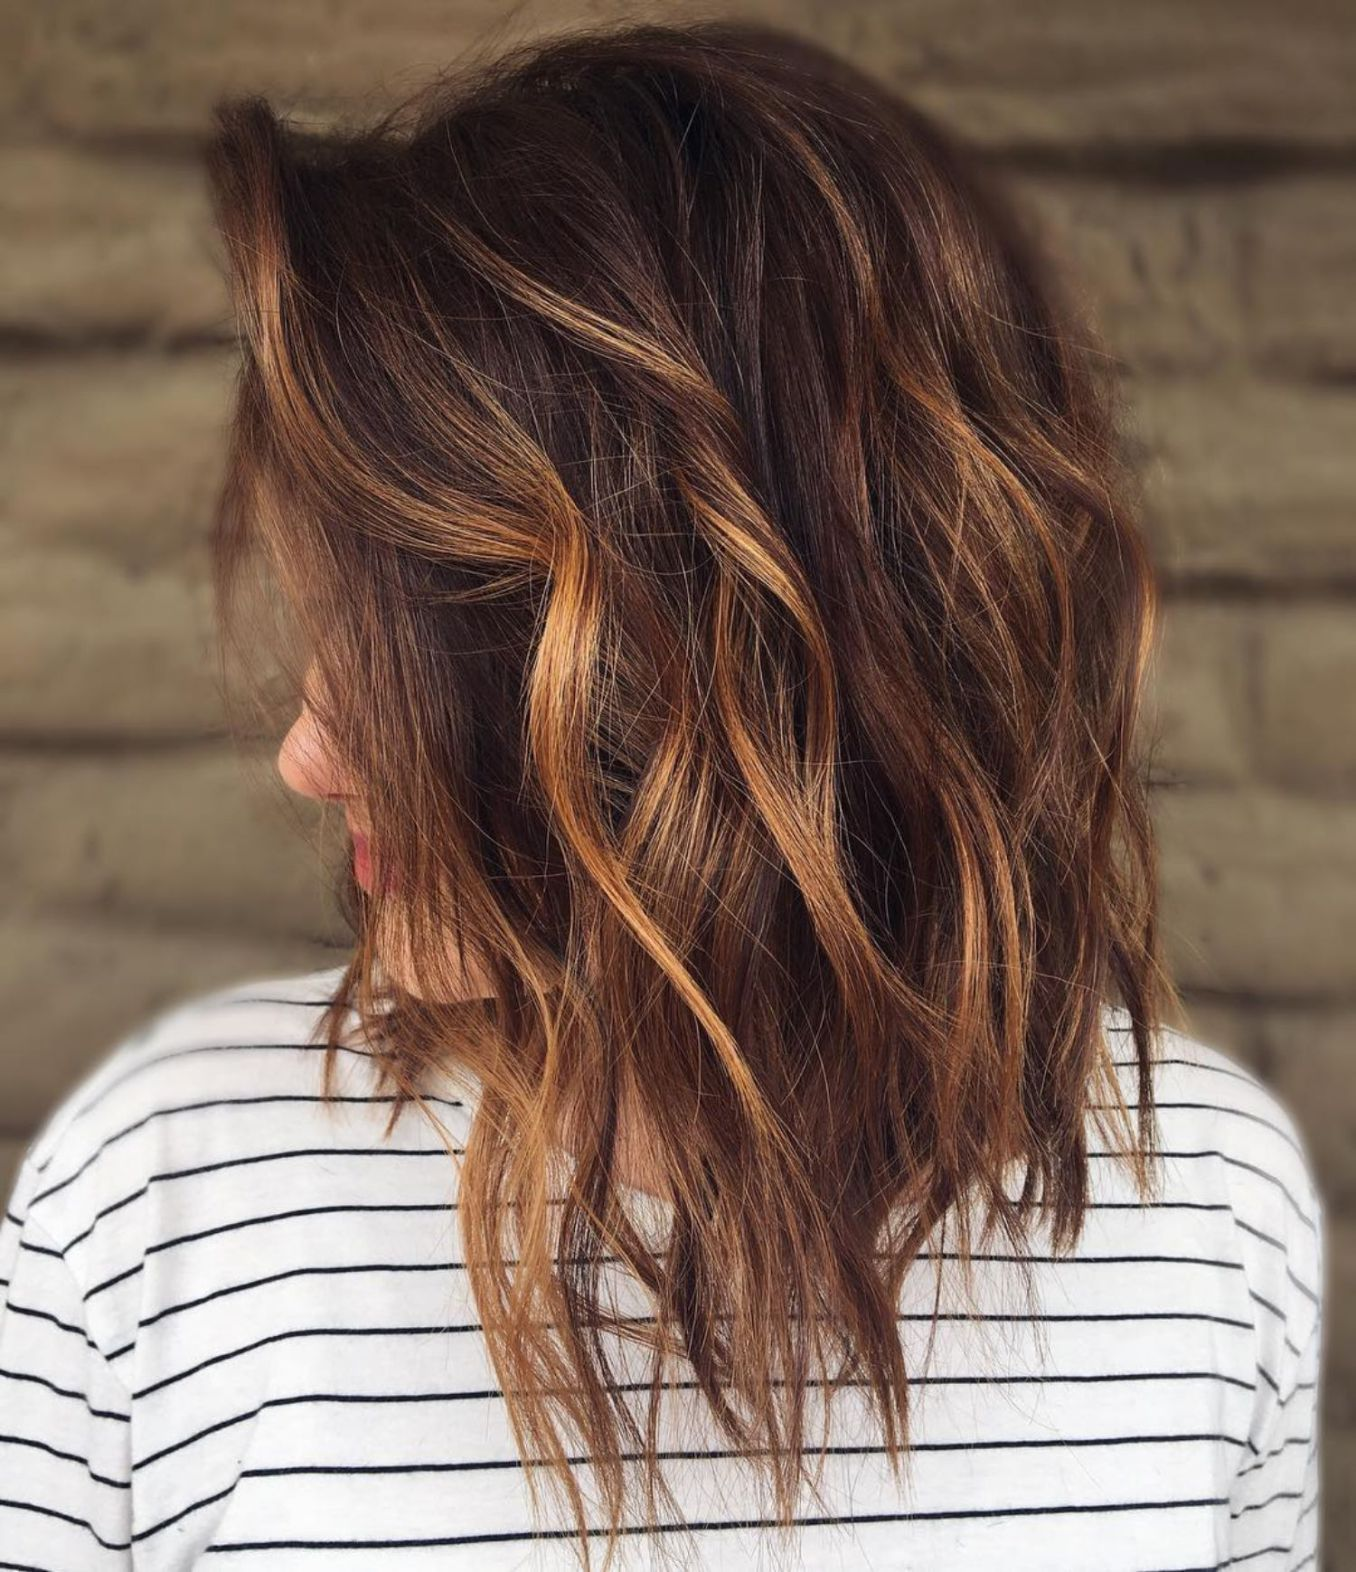 60 Fun and Flattering Medium Hairstyles for Women #caramelbalayage